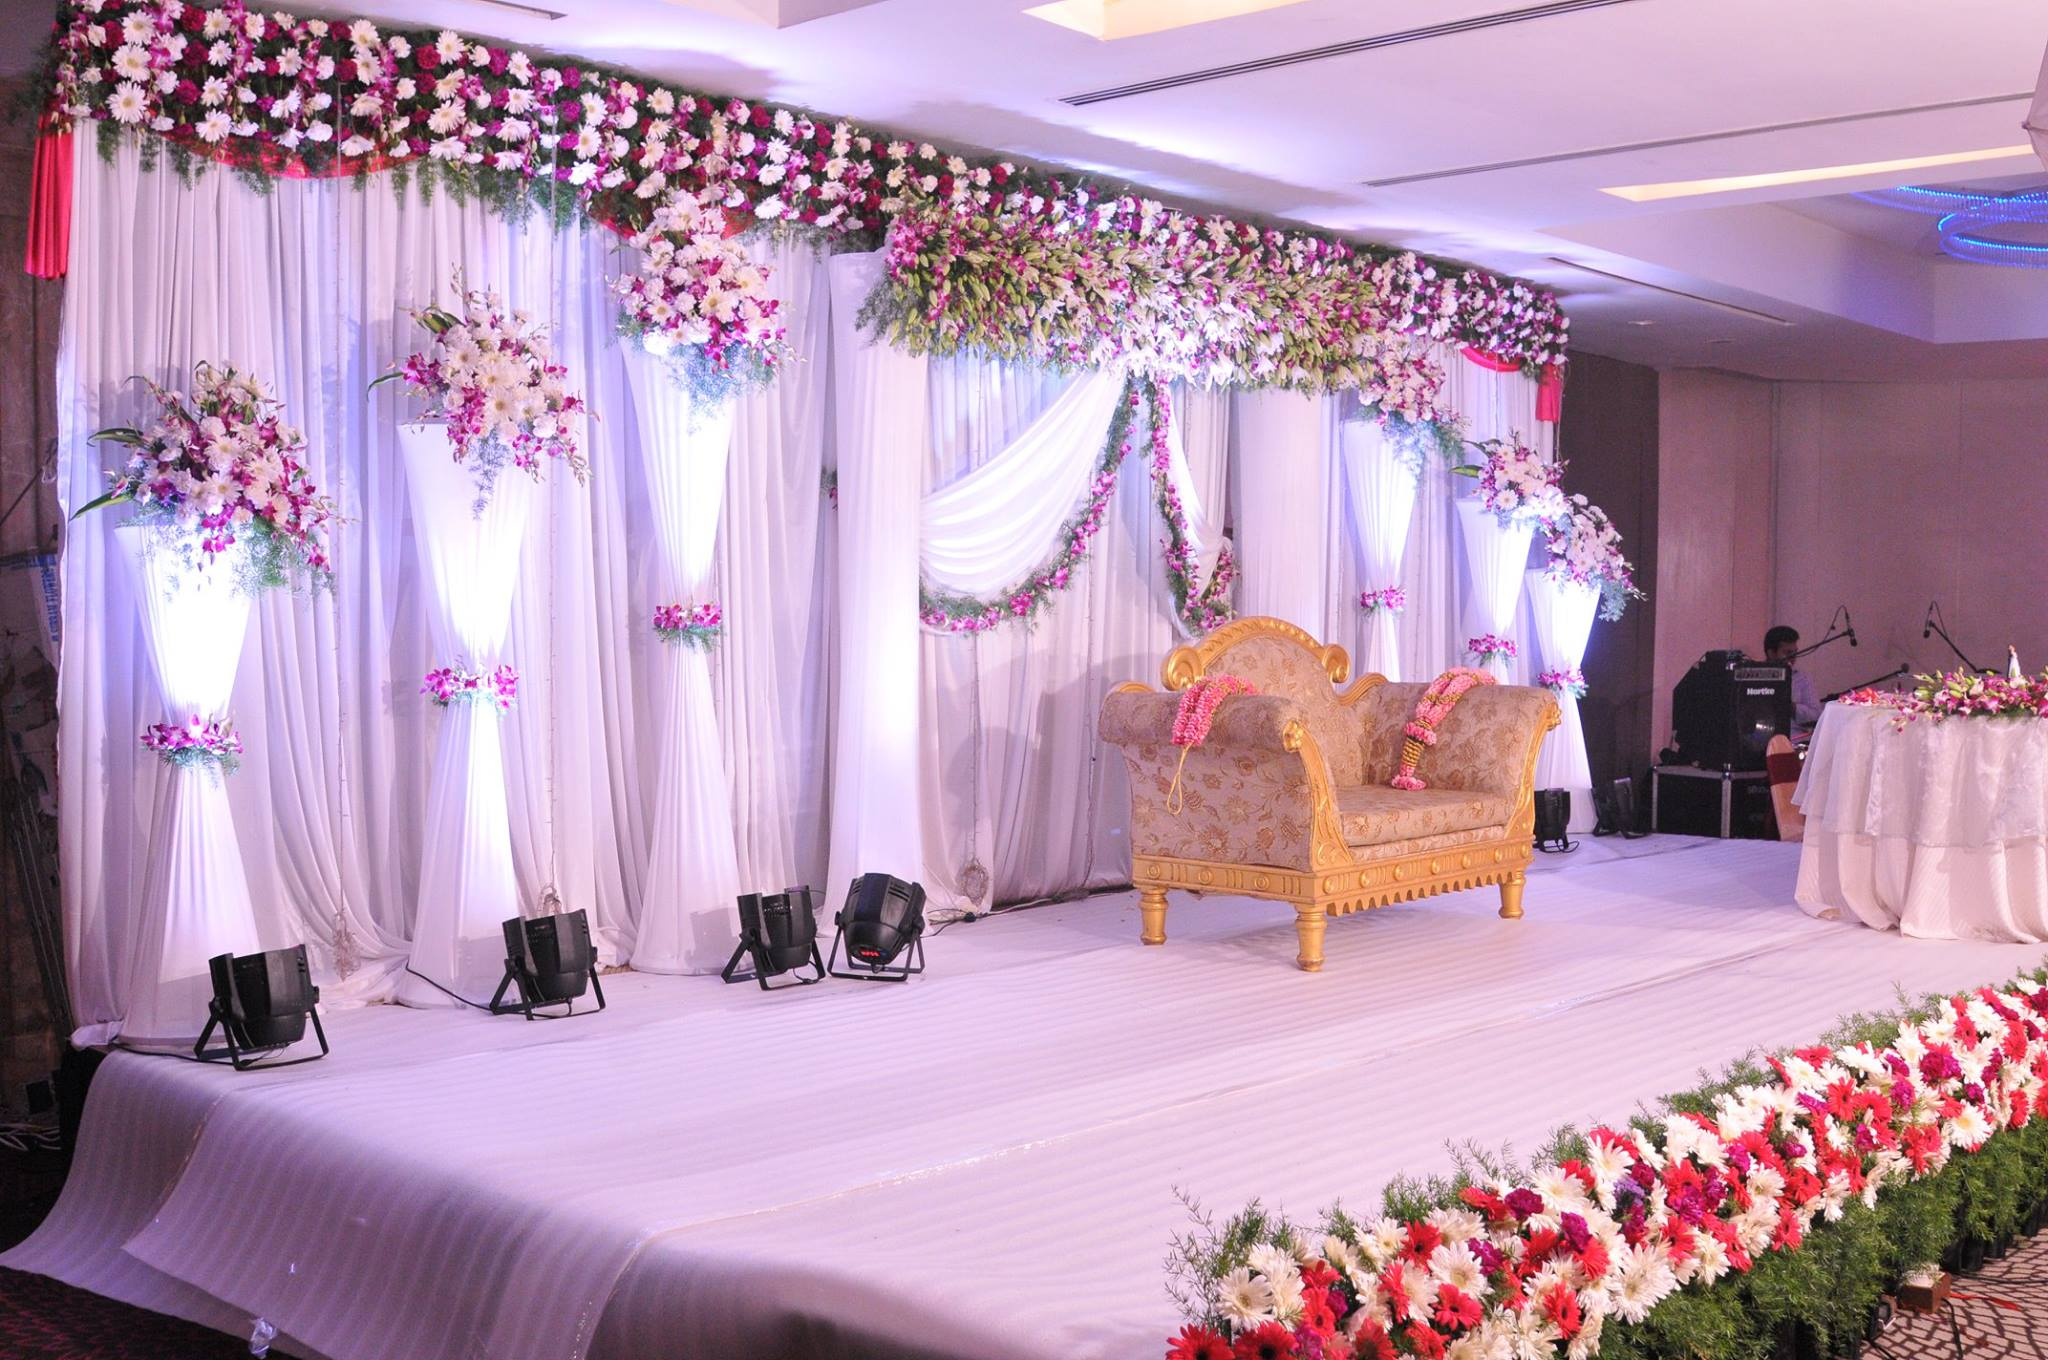 El Shaddai Christian Wedding Planners | Wedding Planners in Chennai ...